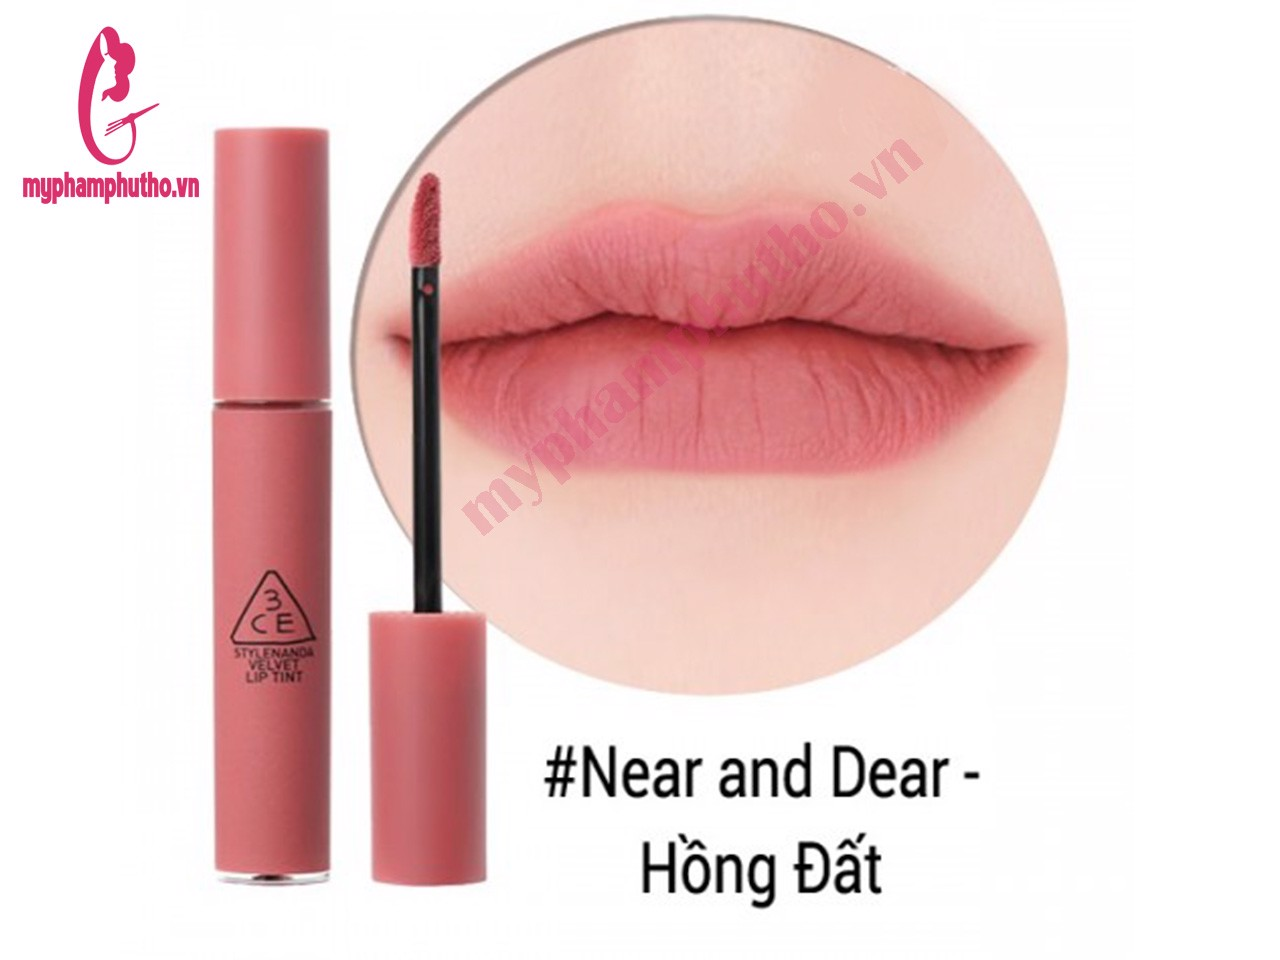 Son Kem Lì 3CE Velvet Lip Tint Màu NEAR AND DEAR